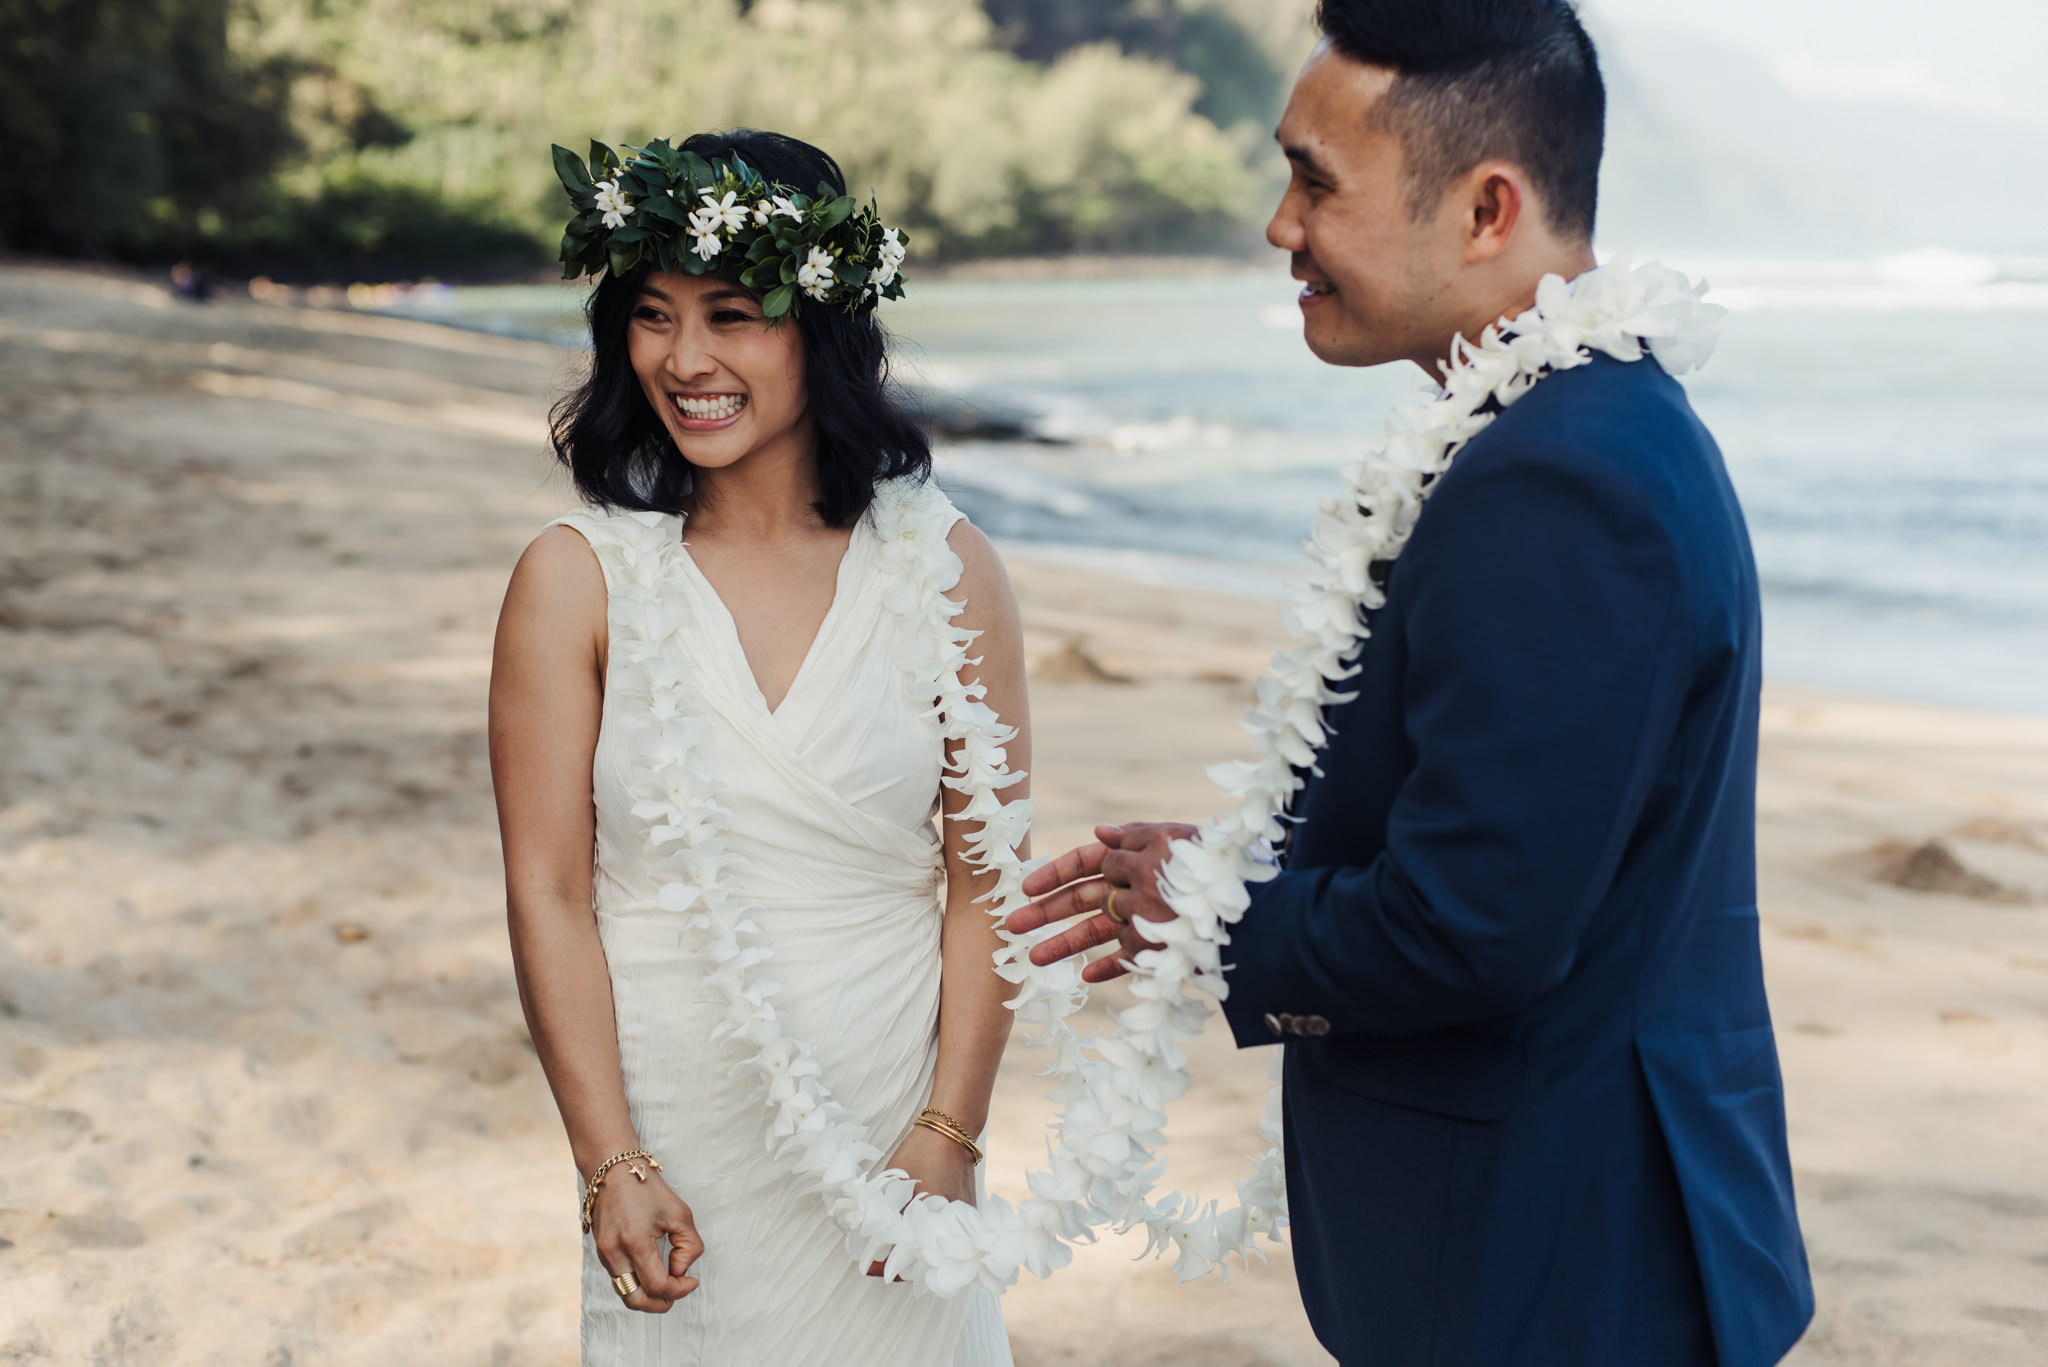 bride and groom smiling during wedding ceremony on beach